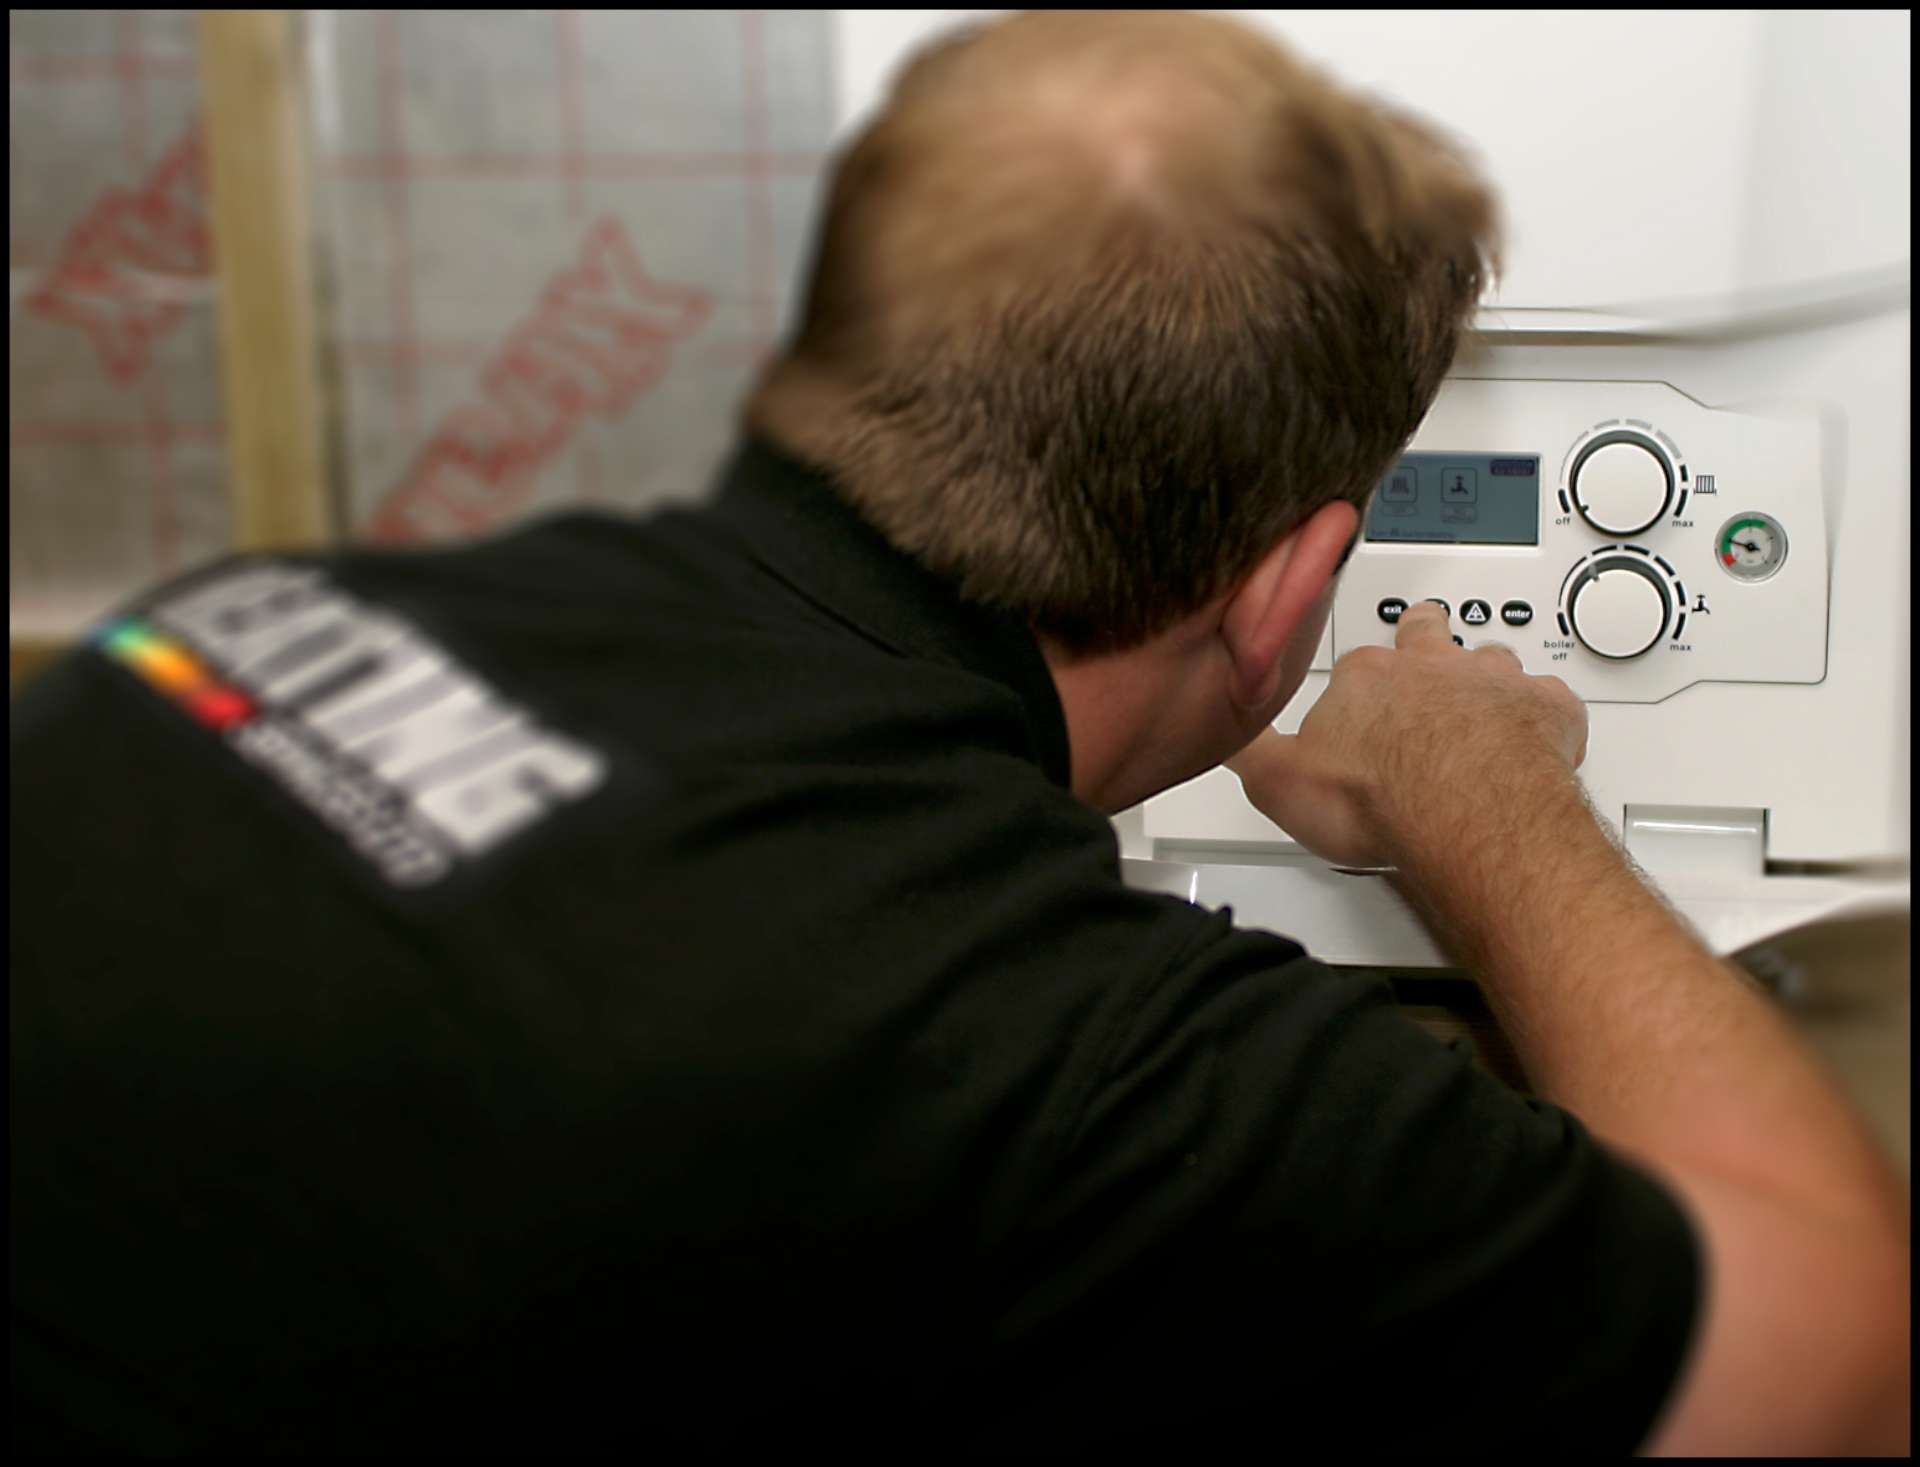 Plumbers Boiler Installation_ Service and Repairs and Bathroom Design and Installation by Heating Services Ltd in Orpington (5)